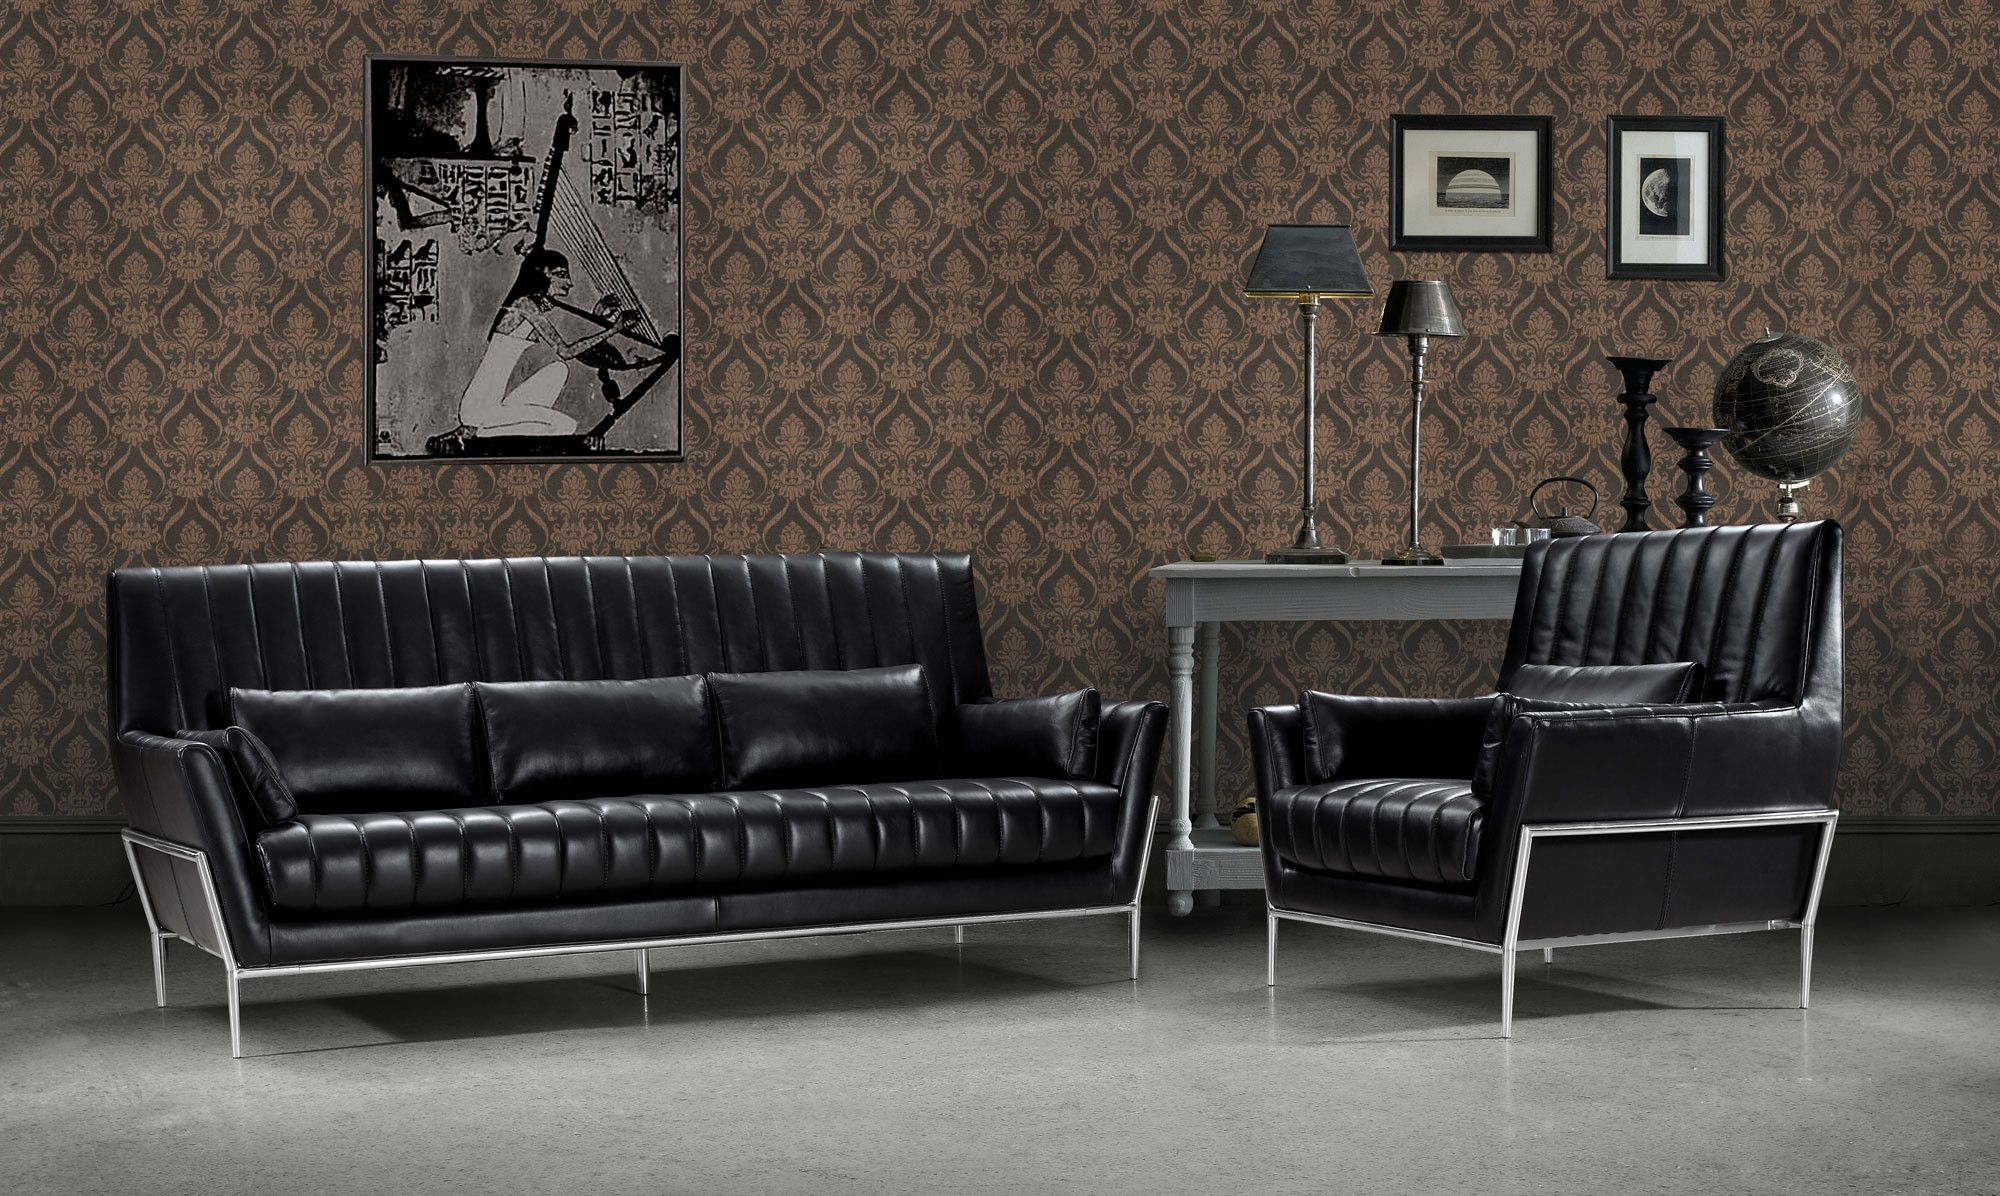 Divani Casa 0721 - Luxury Black Leather Sofa Set | Black leather ...